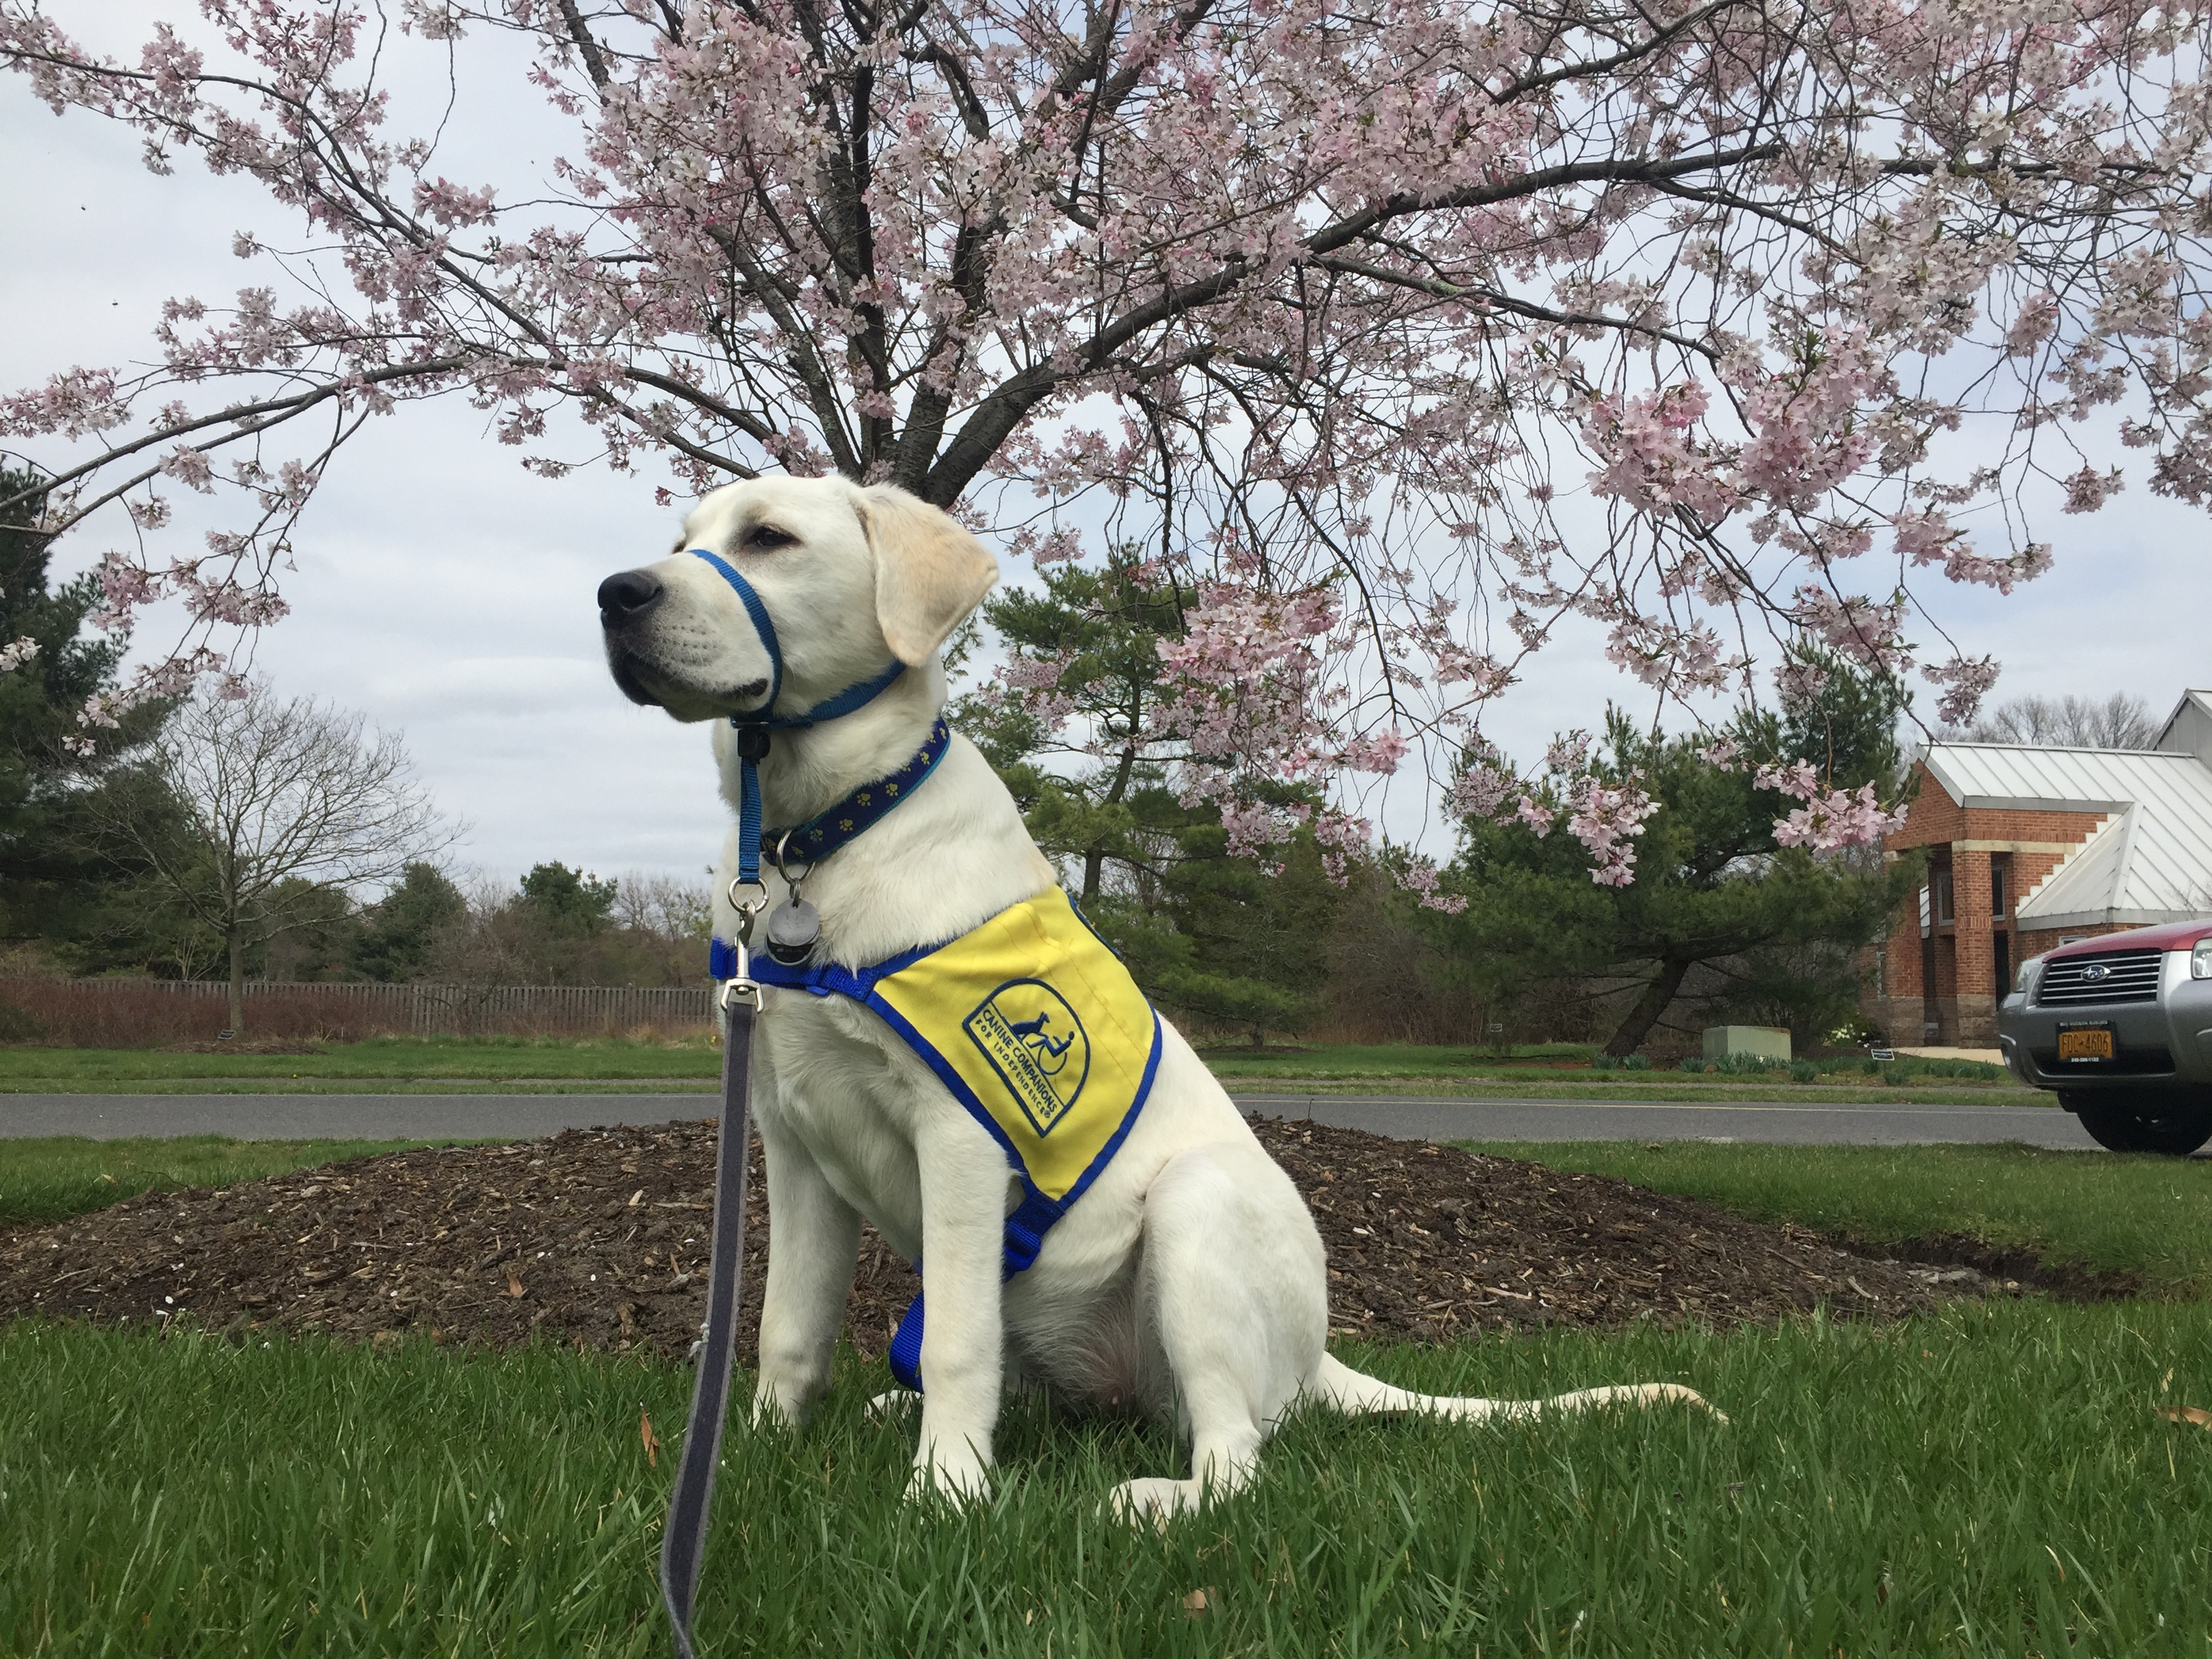 Treat, a golden retriever and yellow lab mix, is one of the puppies being trained in Canine Companions for Independence at Rowan University. -Photo courtesy of Nicole Puzio